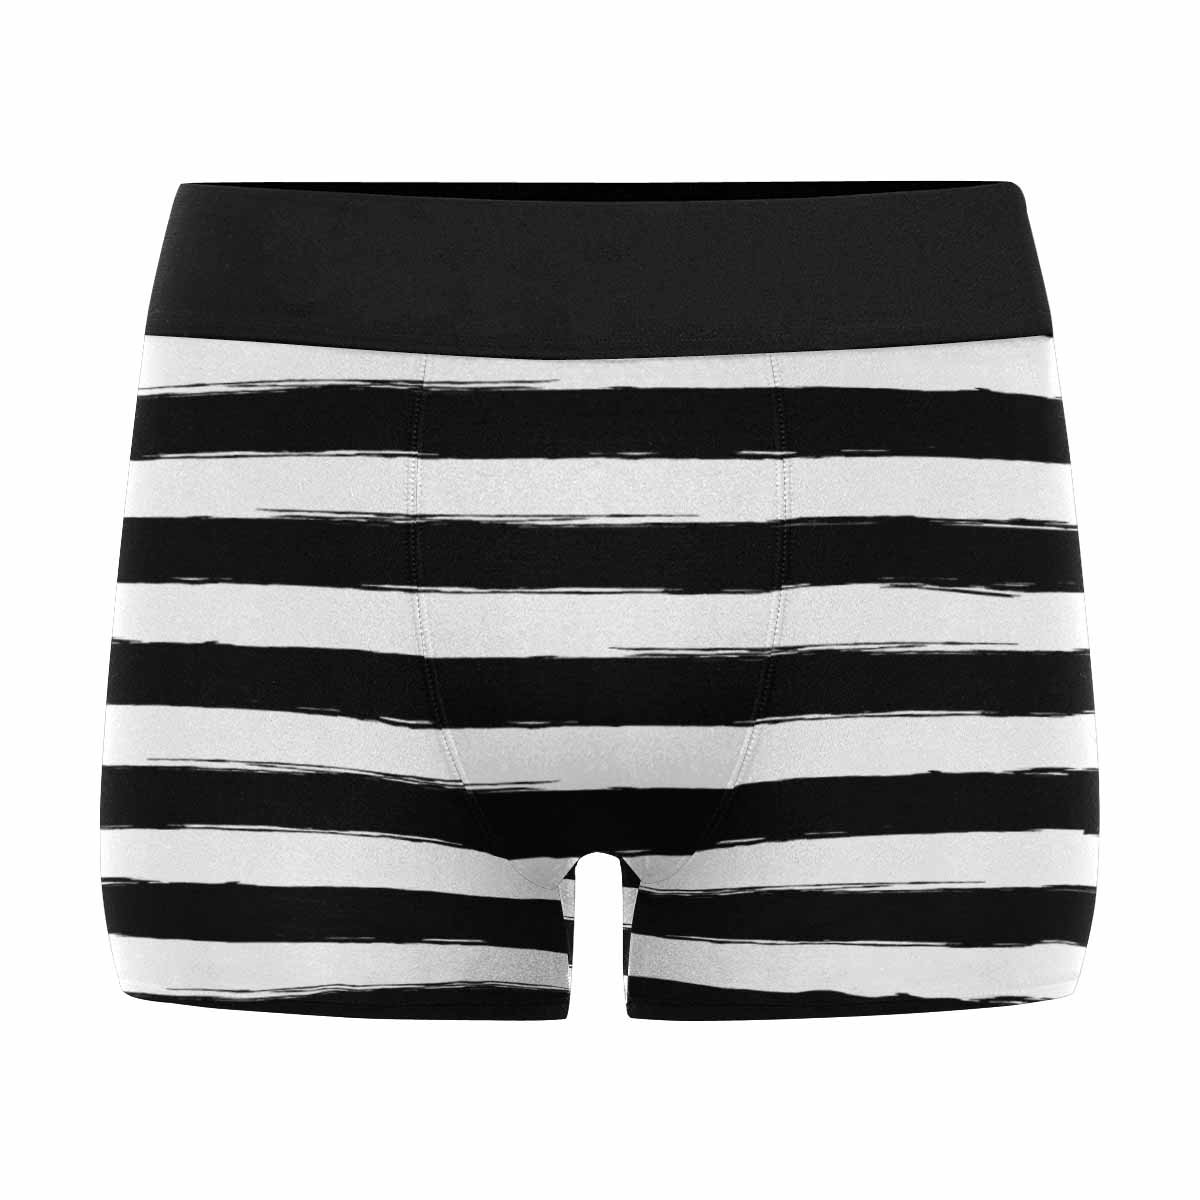 XS-3XL INTERESTPRINT Custom Mens All-Over Print Boxer Briefs Abstract Black and White Brush Strokes